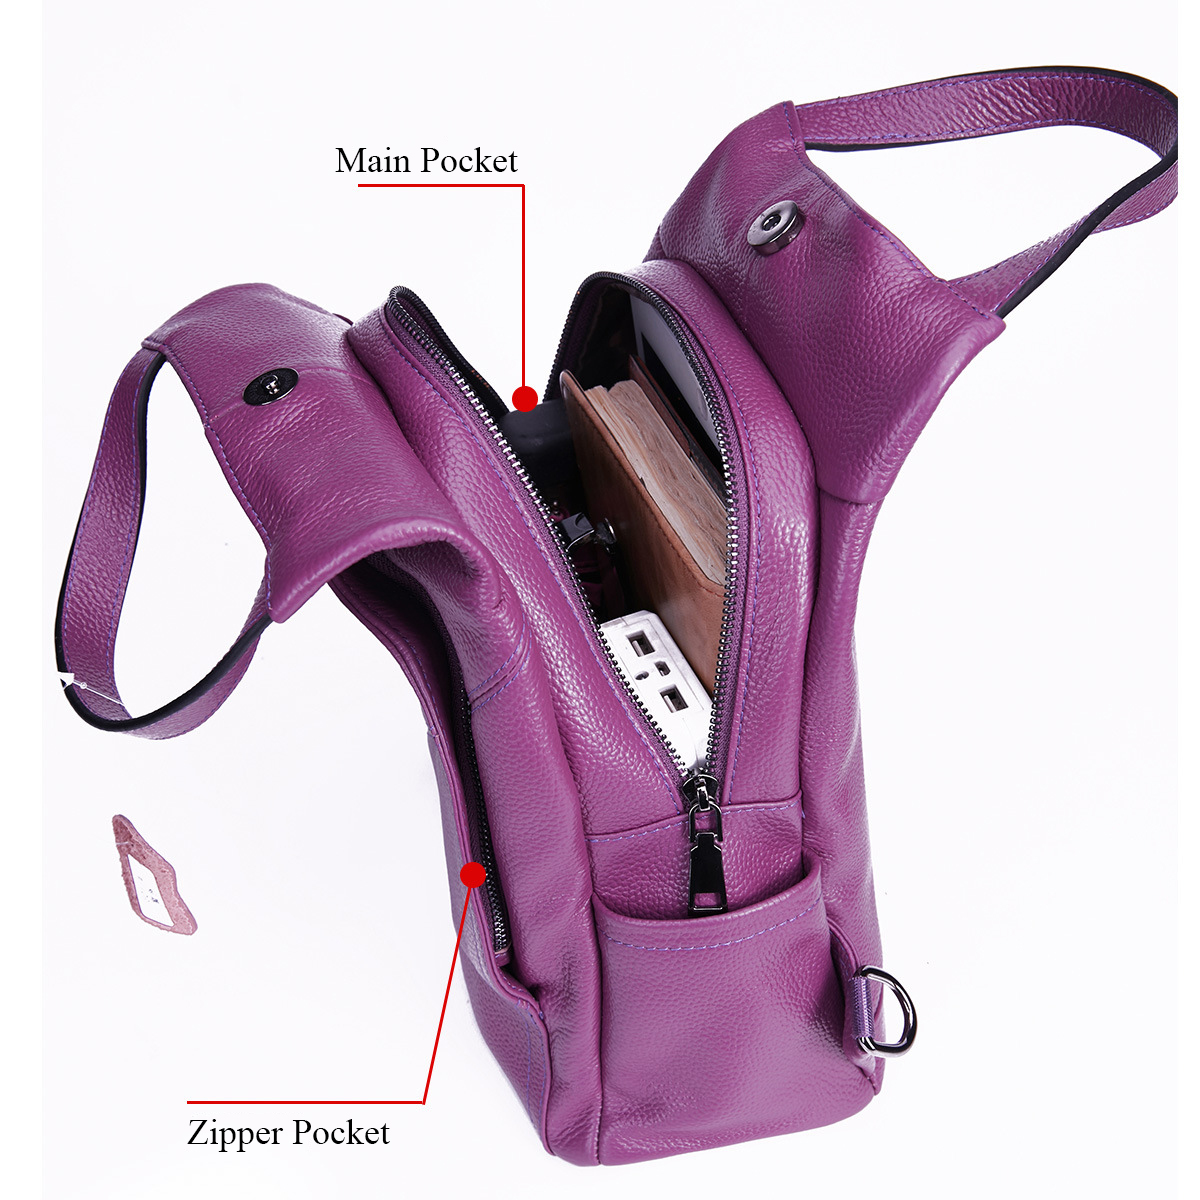 BONAMIE Purple Genuine Leather Backpack Women Brand School Backpack Real Leather Female Mochila Shoulder Bags For Teenage Girls-in Backpacks from Luggage & Bags    3